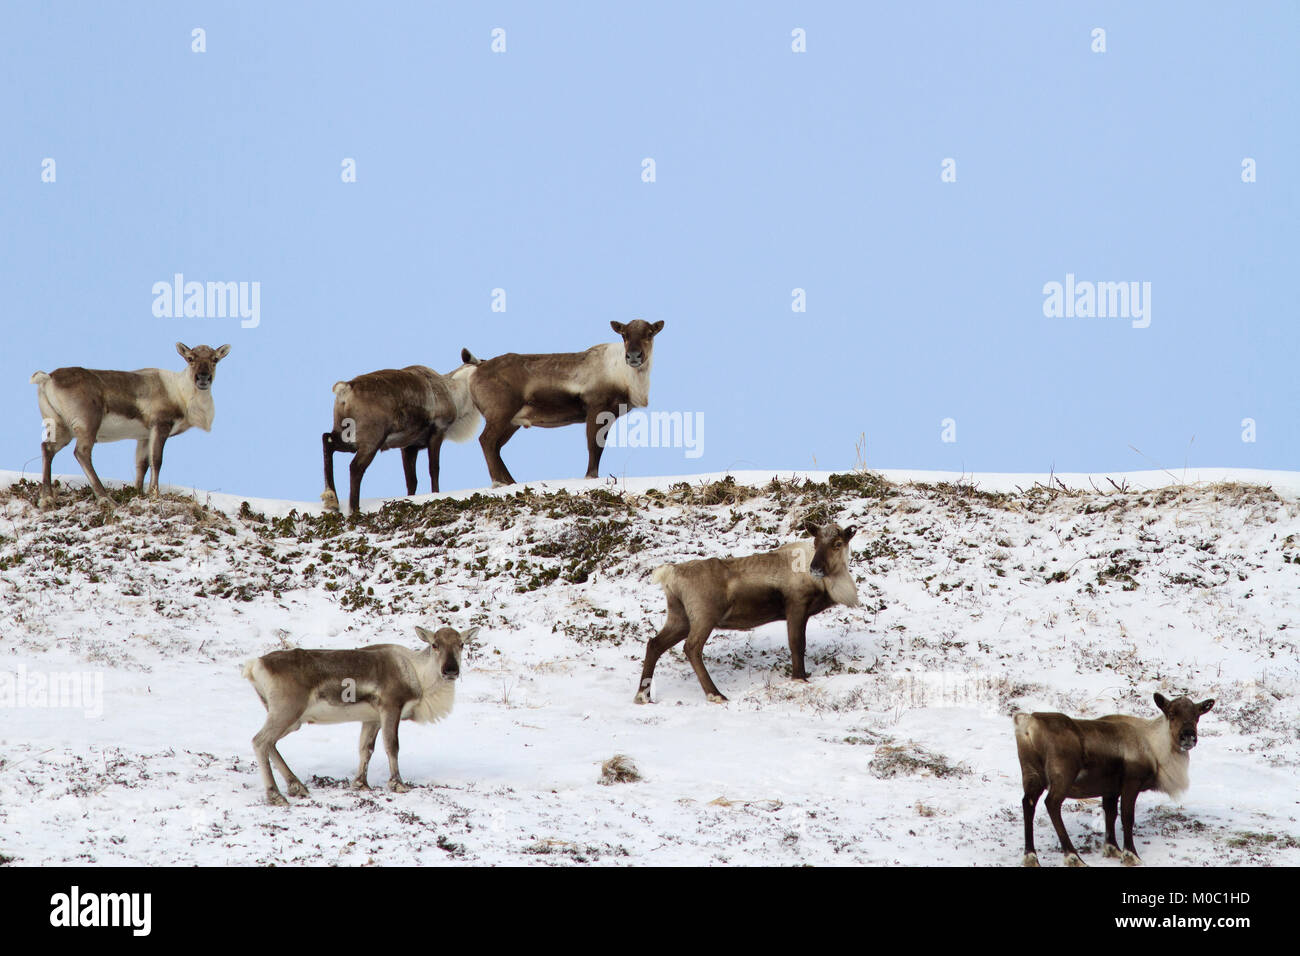 A small herd of reindeers standing on top of a hill in the tundra in winter - Stock Image